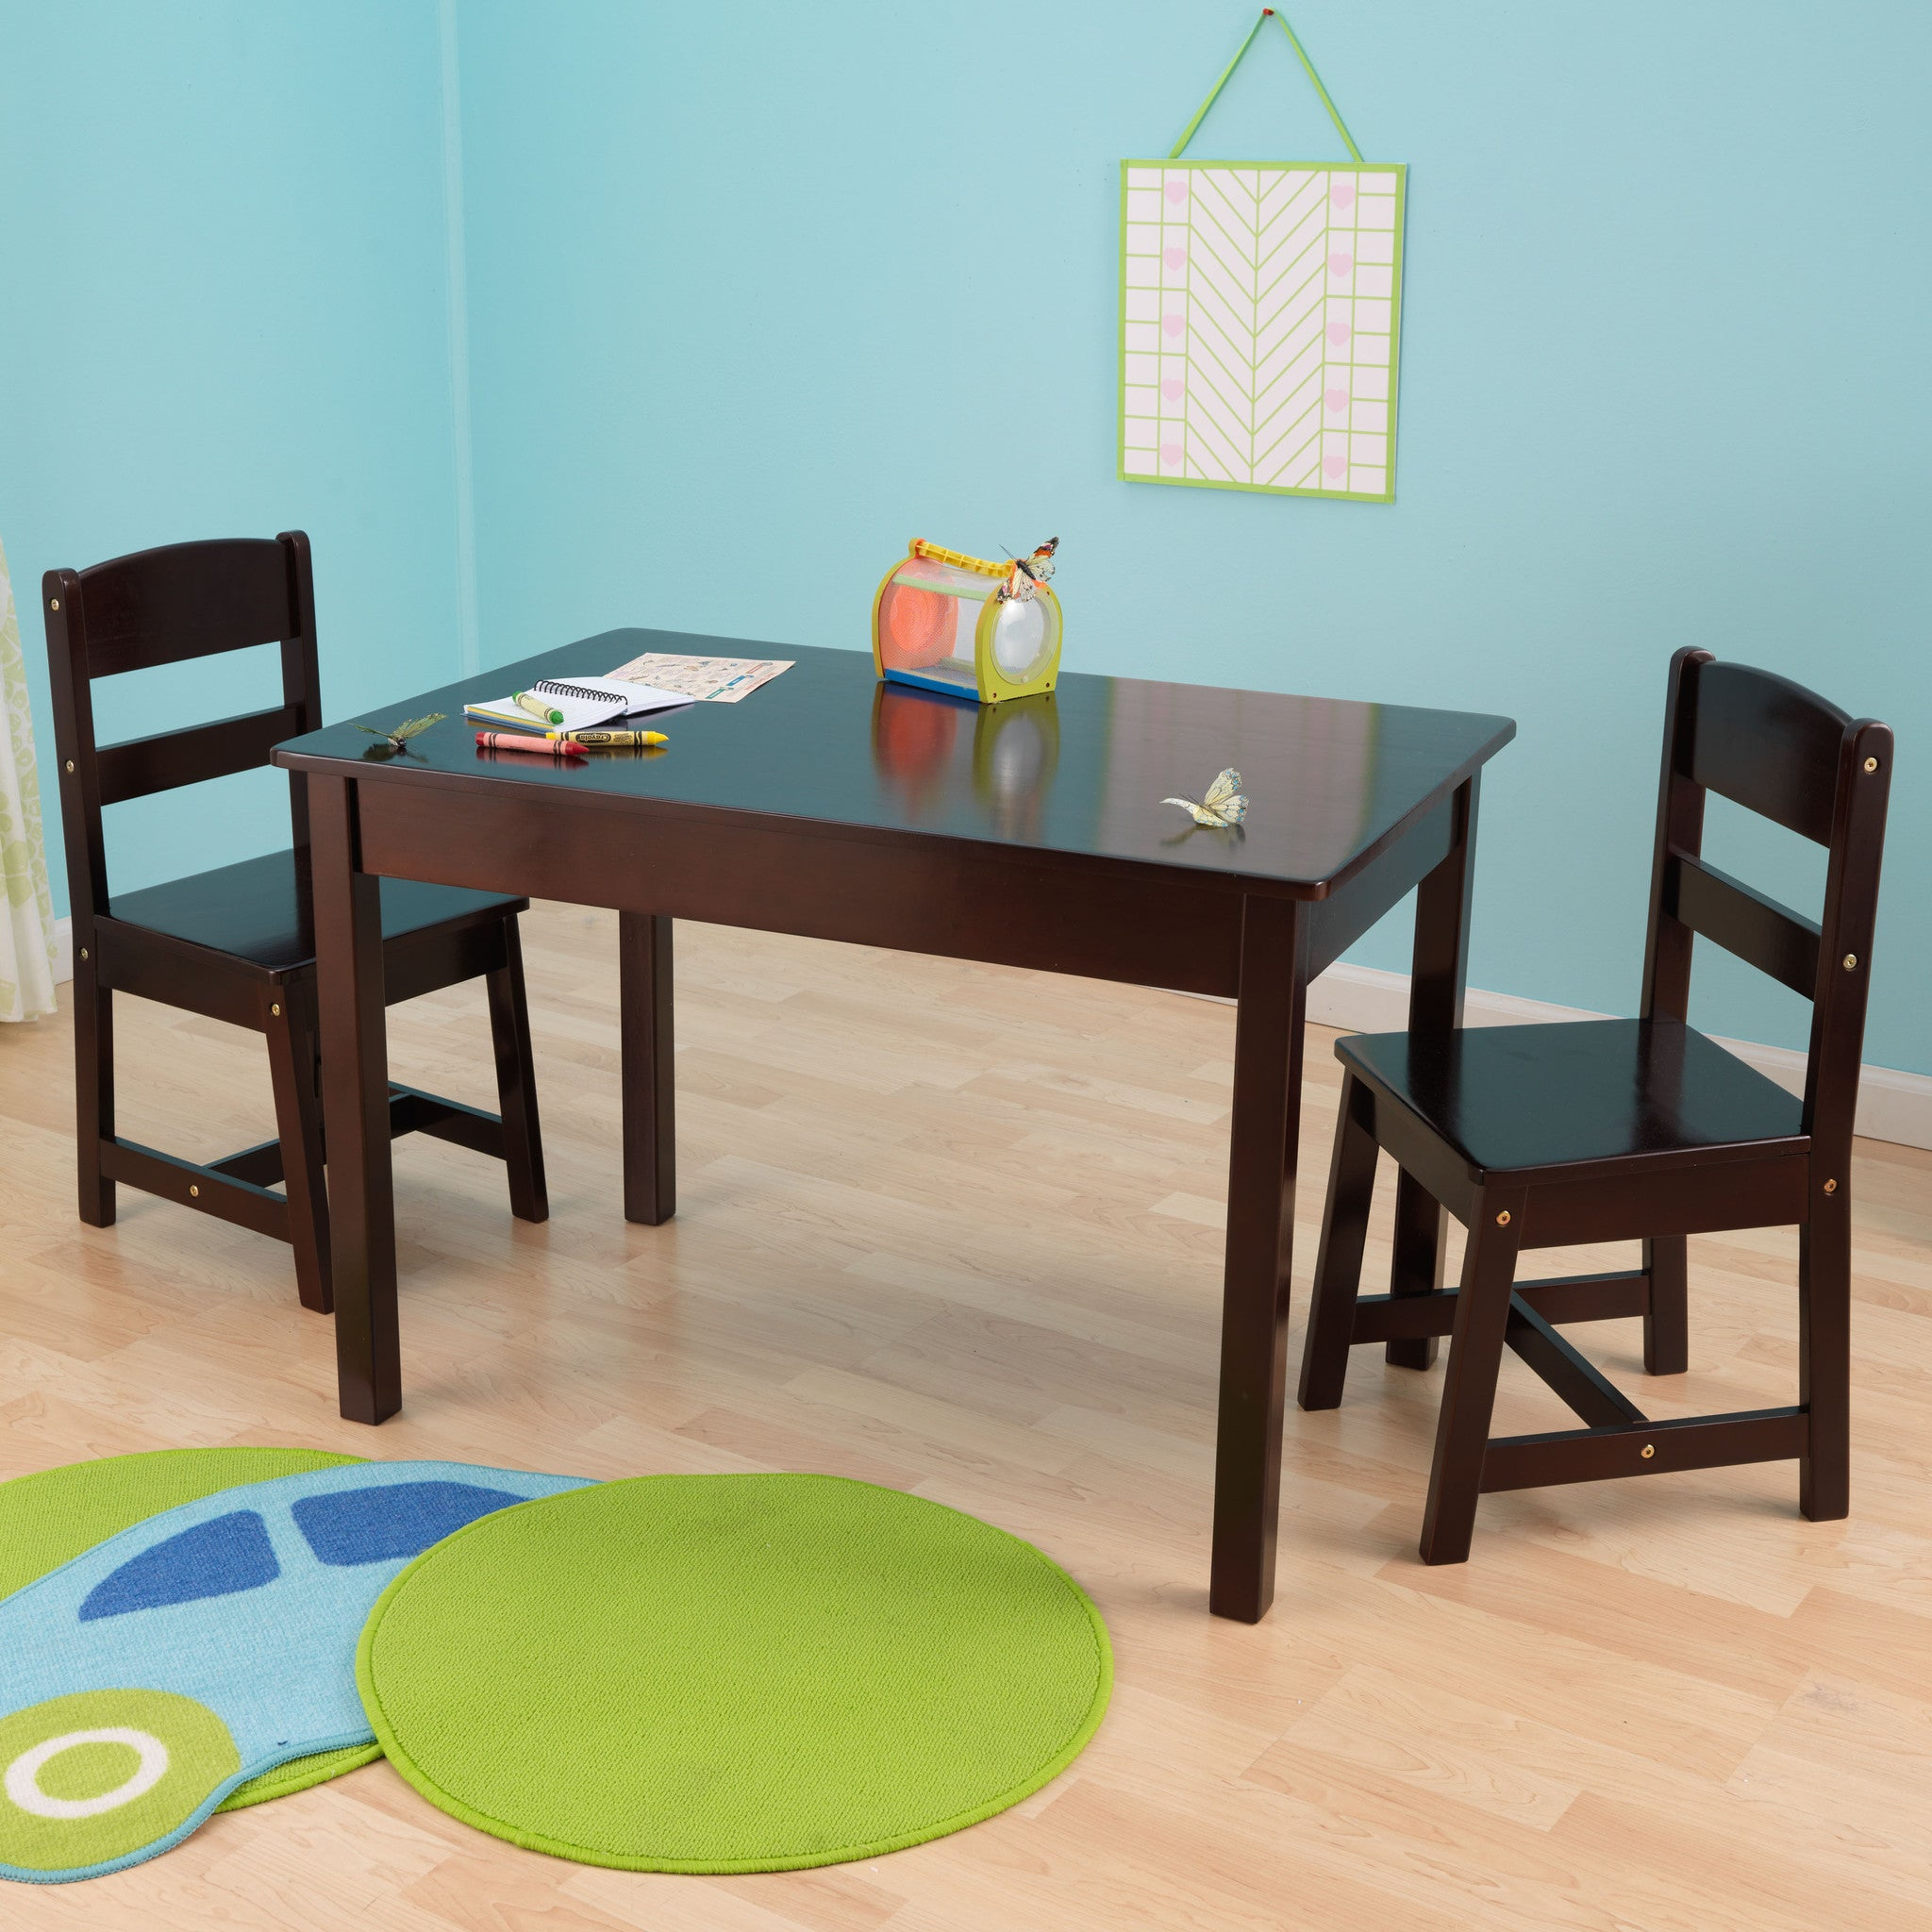 KidKraft Rectangle Table & 2 Chair Set- Espresso - 26680 – Nurzery.com